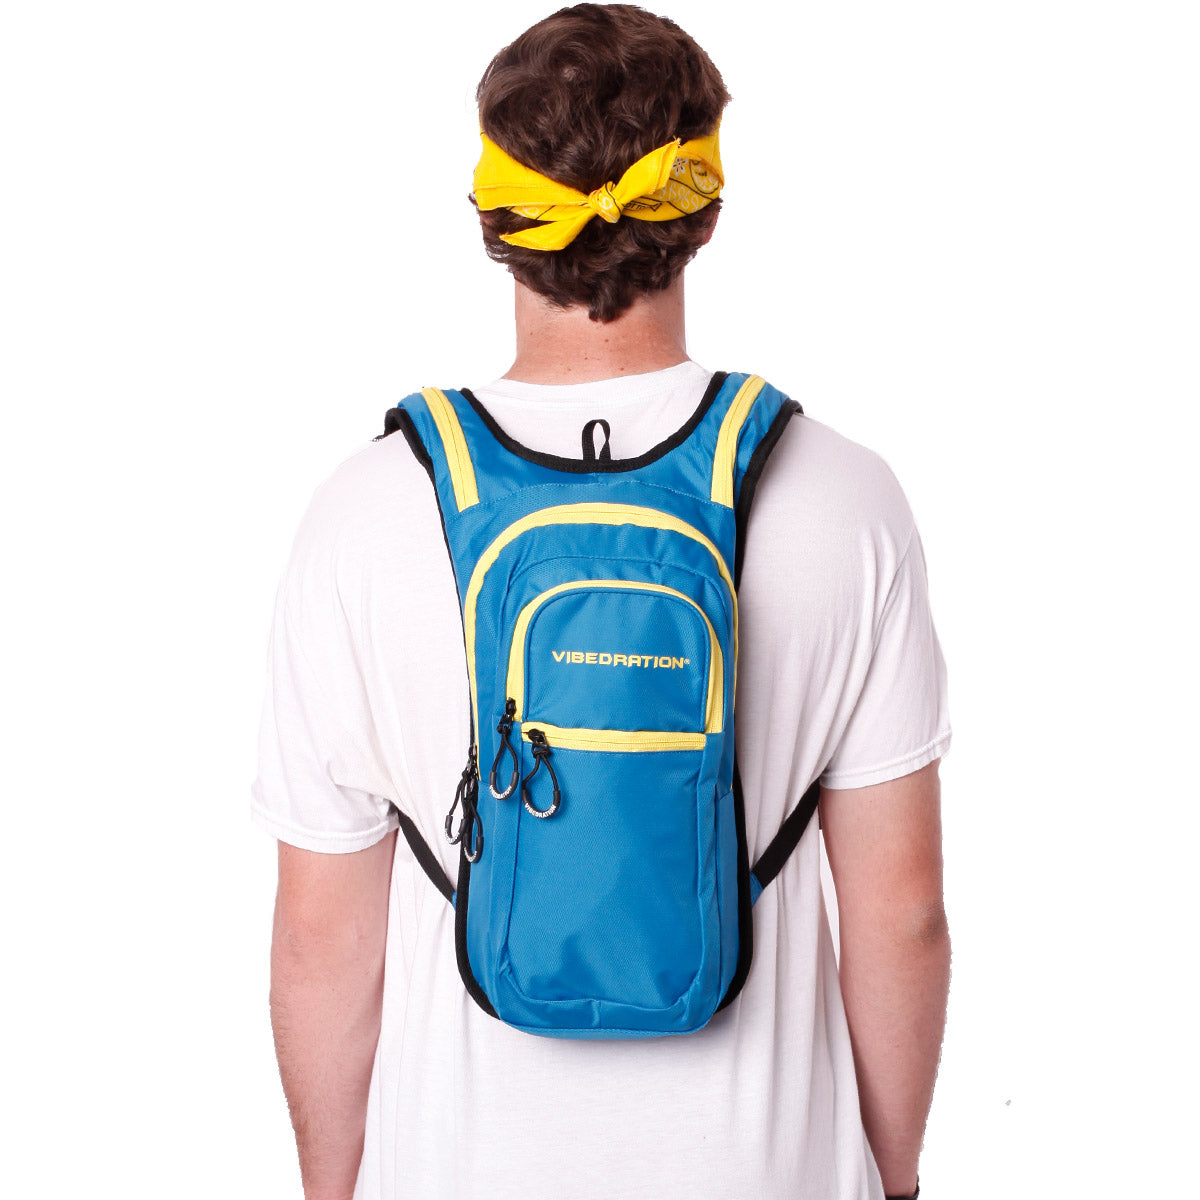 Back view of male wearing baby blue and yellow hydration pack with three pockets.